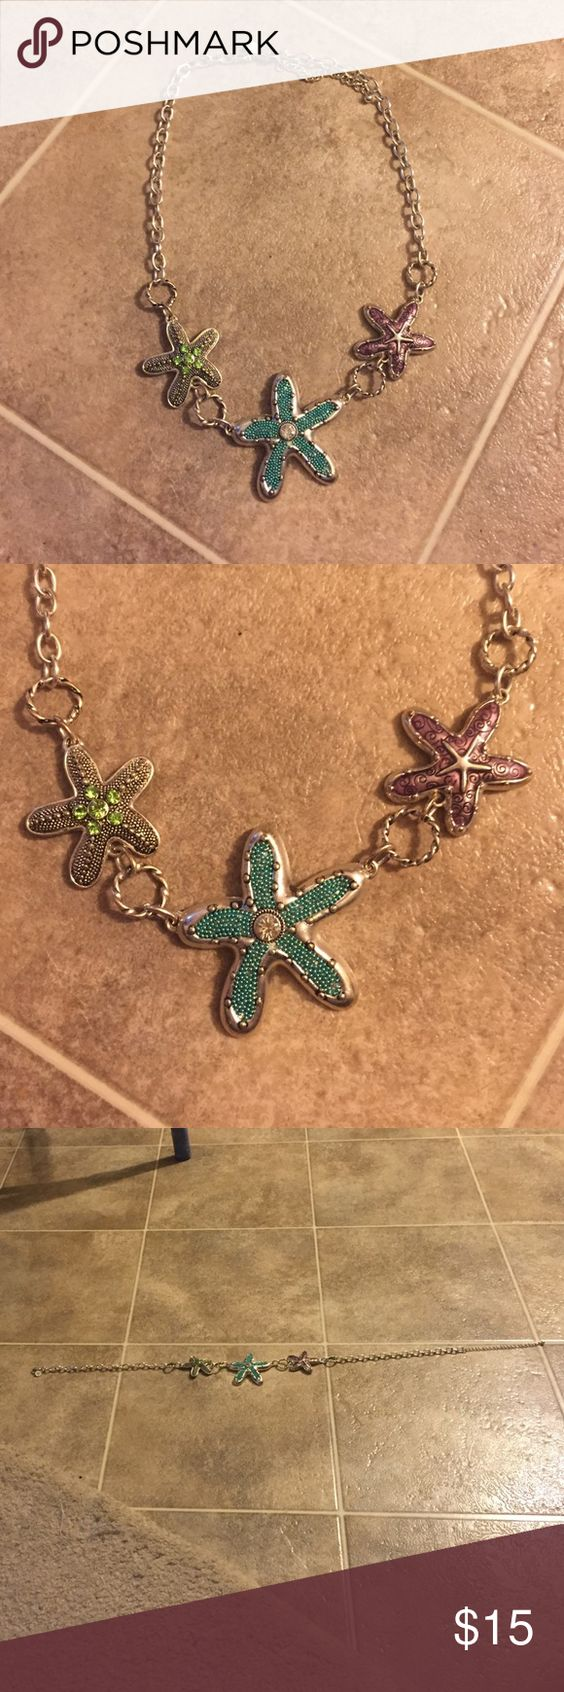 Sterling silver, starfish necklace This whimsical piece is perfect for a summer wardrobe or a touch of humor year round! Just Jewelry  Jewelry Necklaces